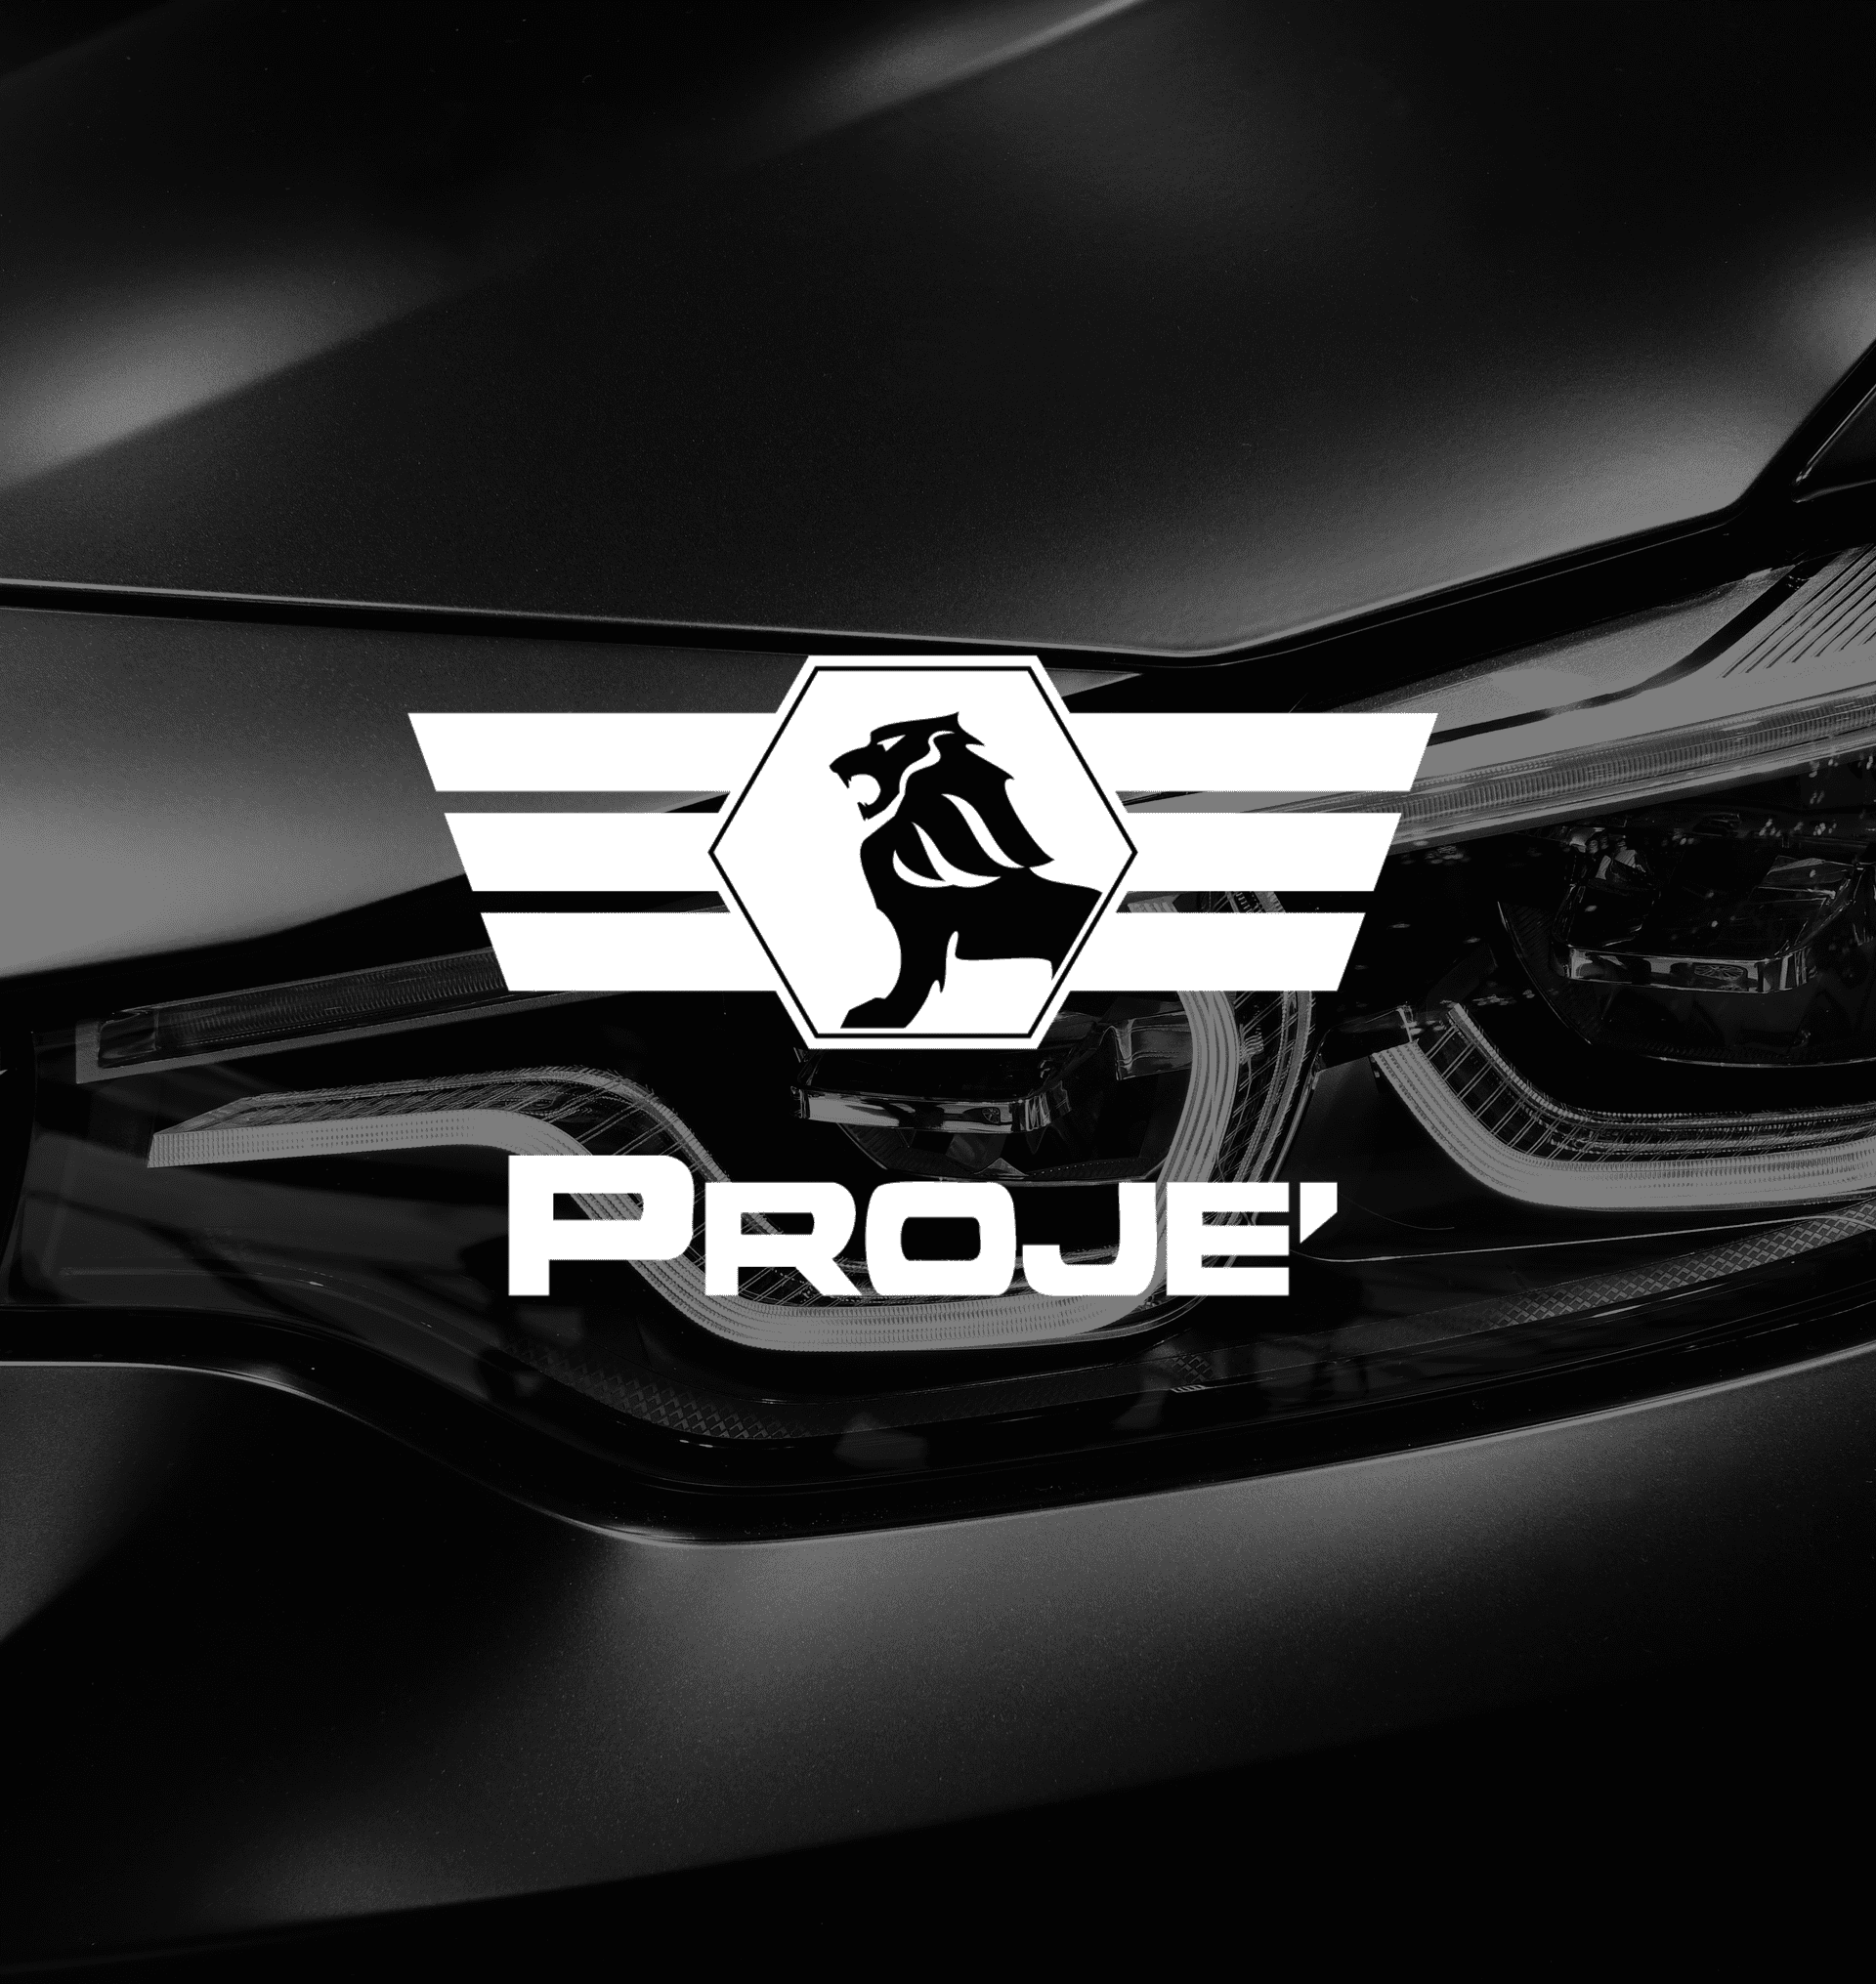 Proje Products